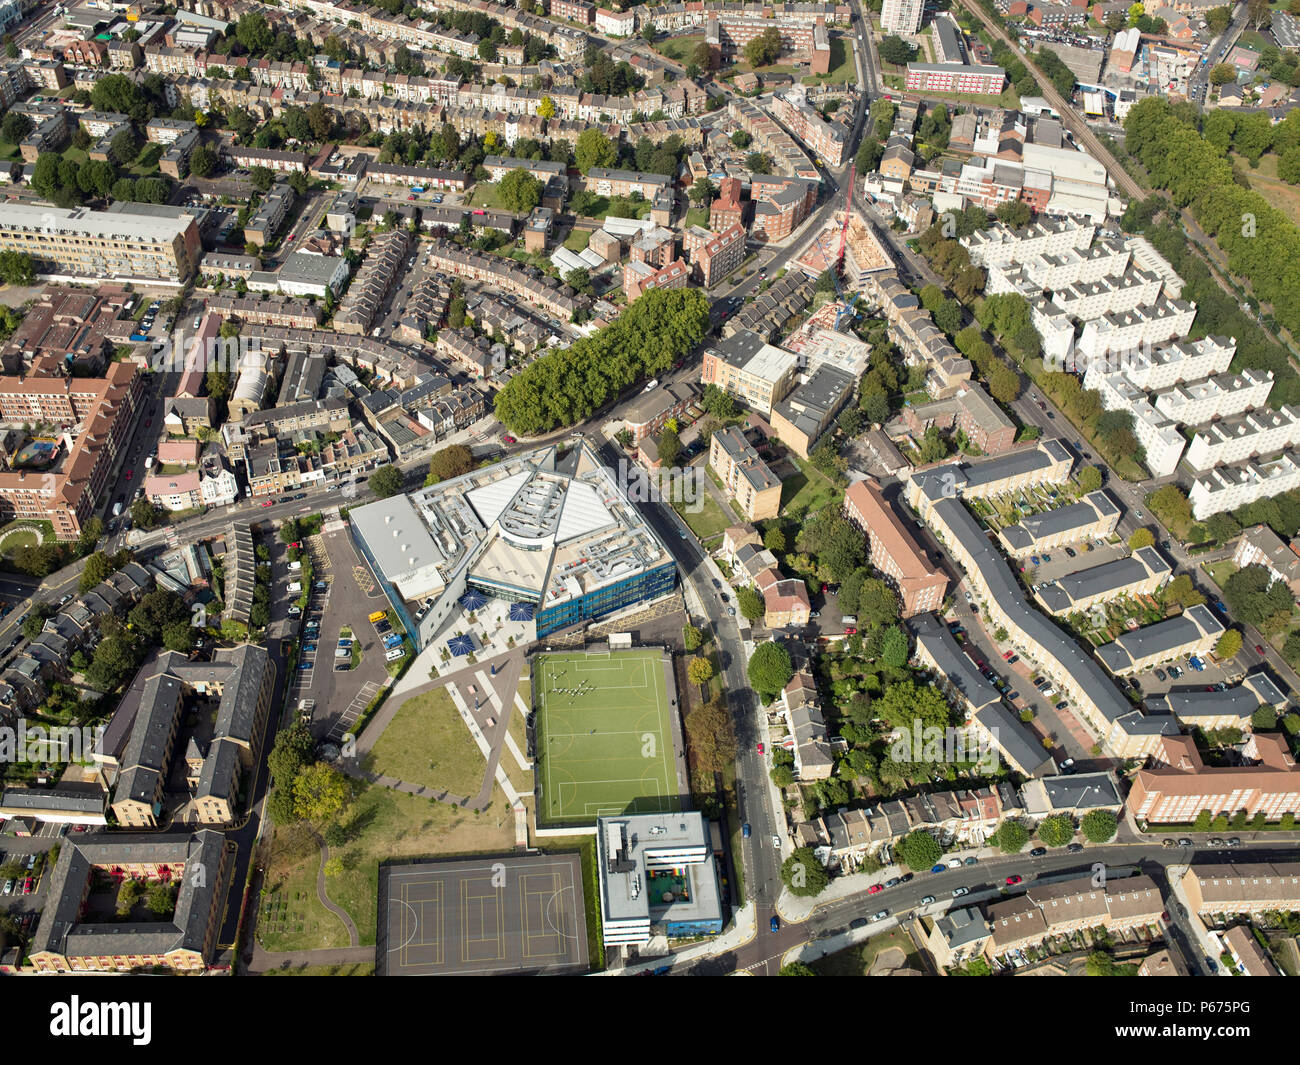 Aerial view of East London, UK - Stock Image